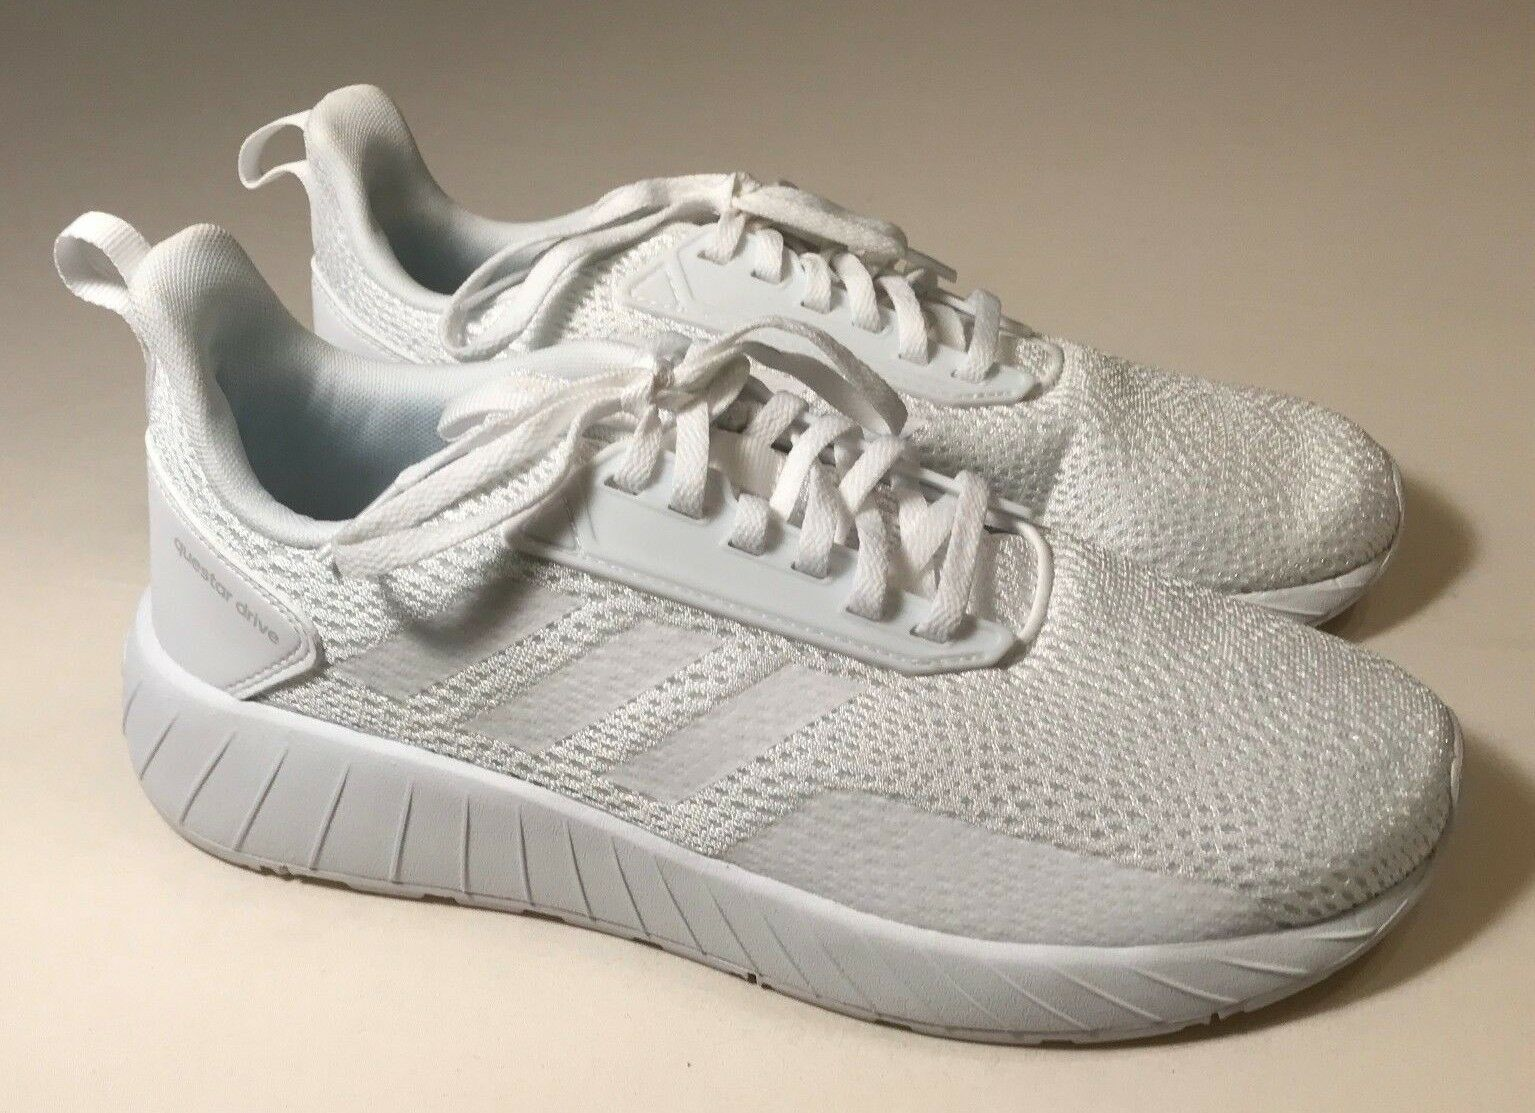 Adidas Questar Drive Ortholite Float White Athletic shoes Women Size 9.5, New